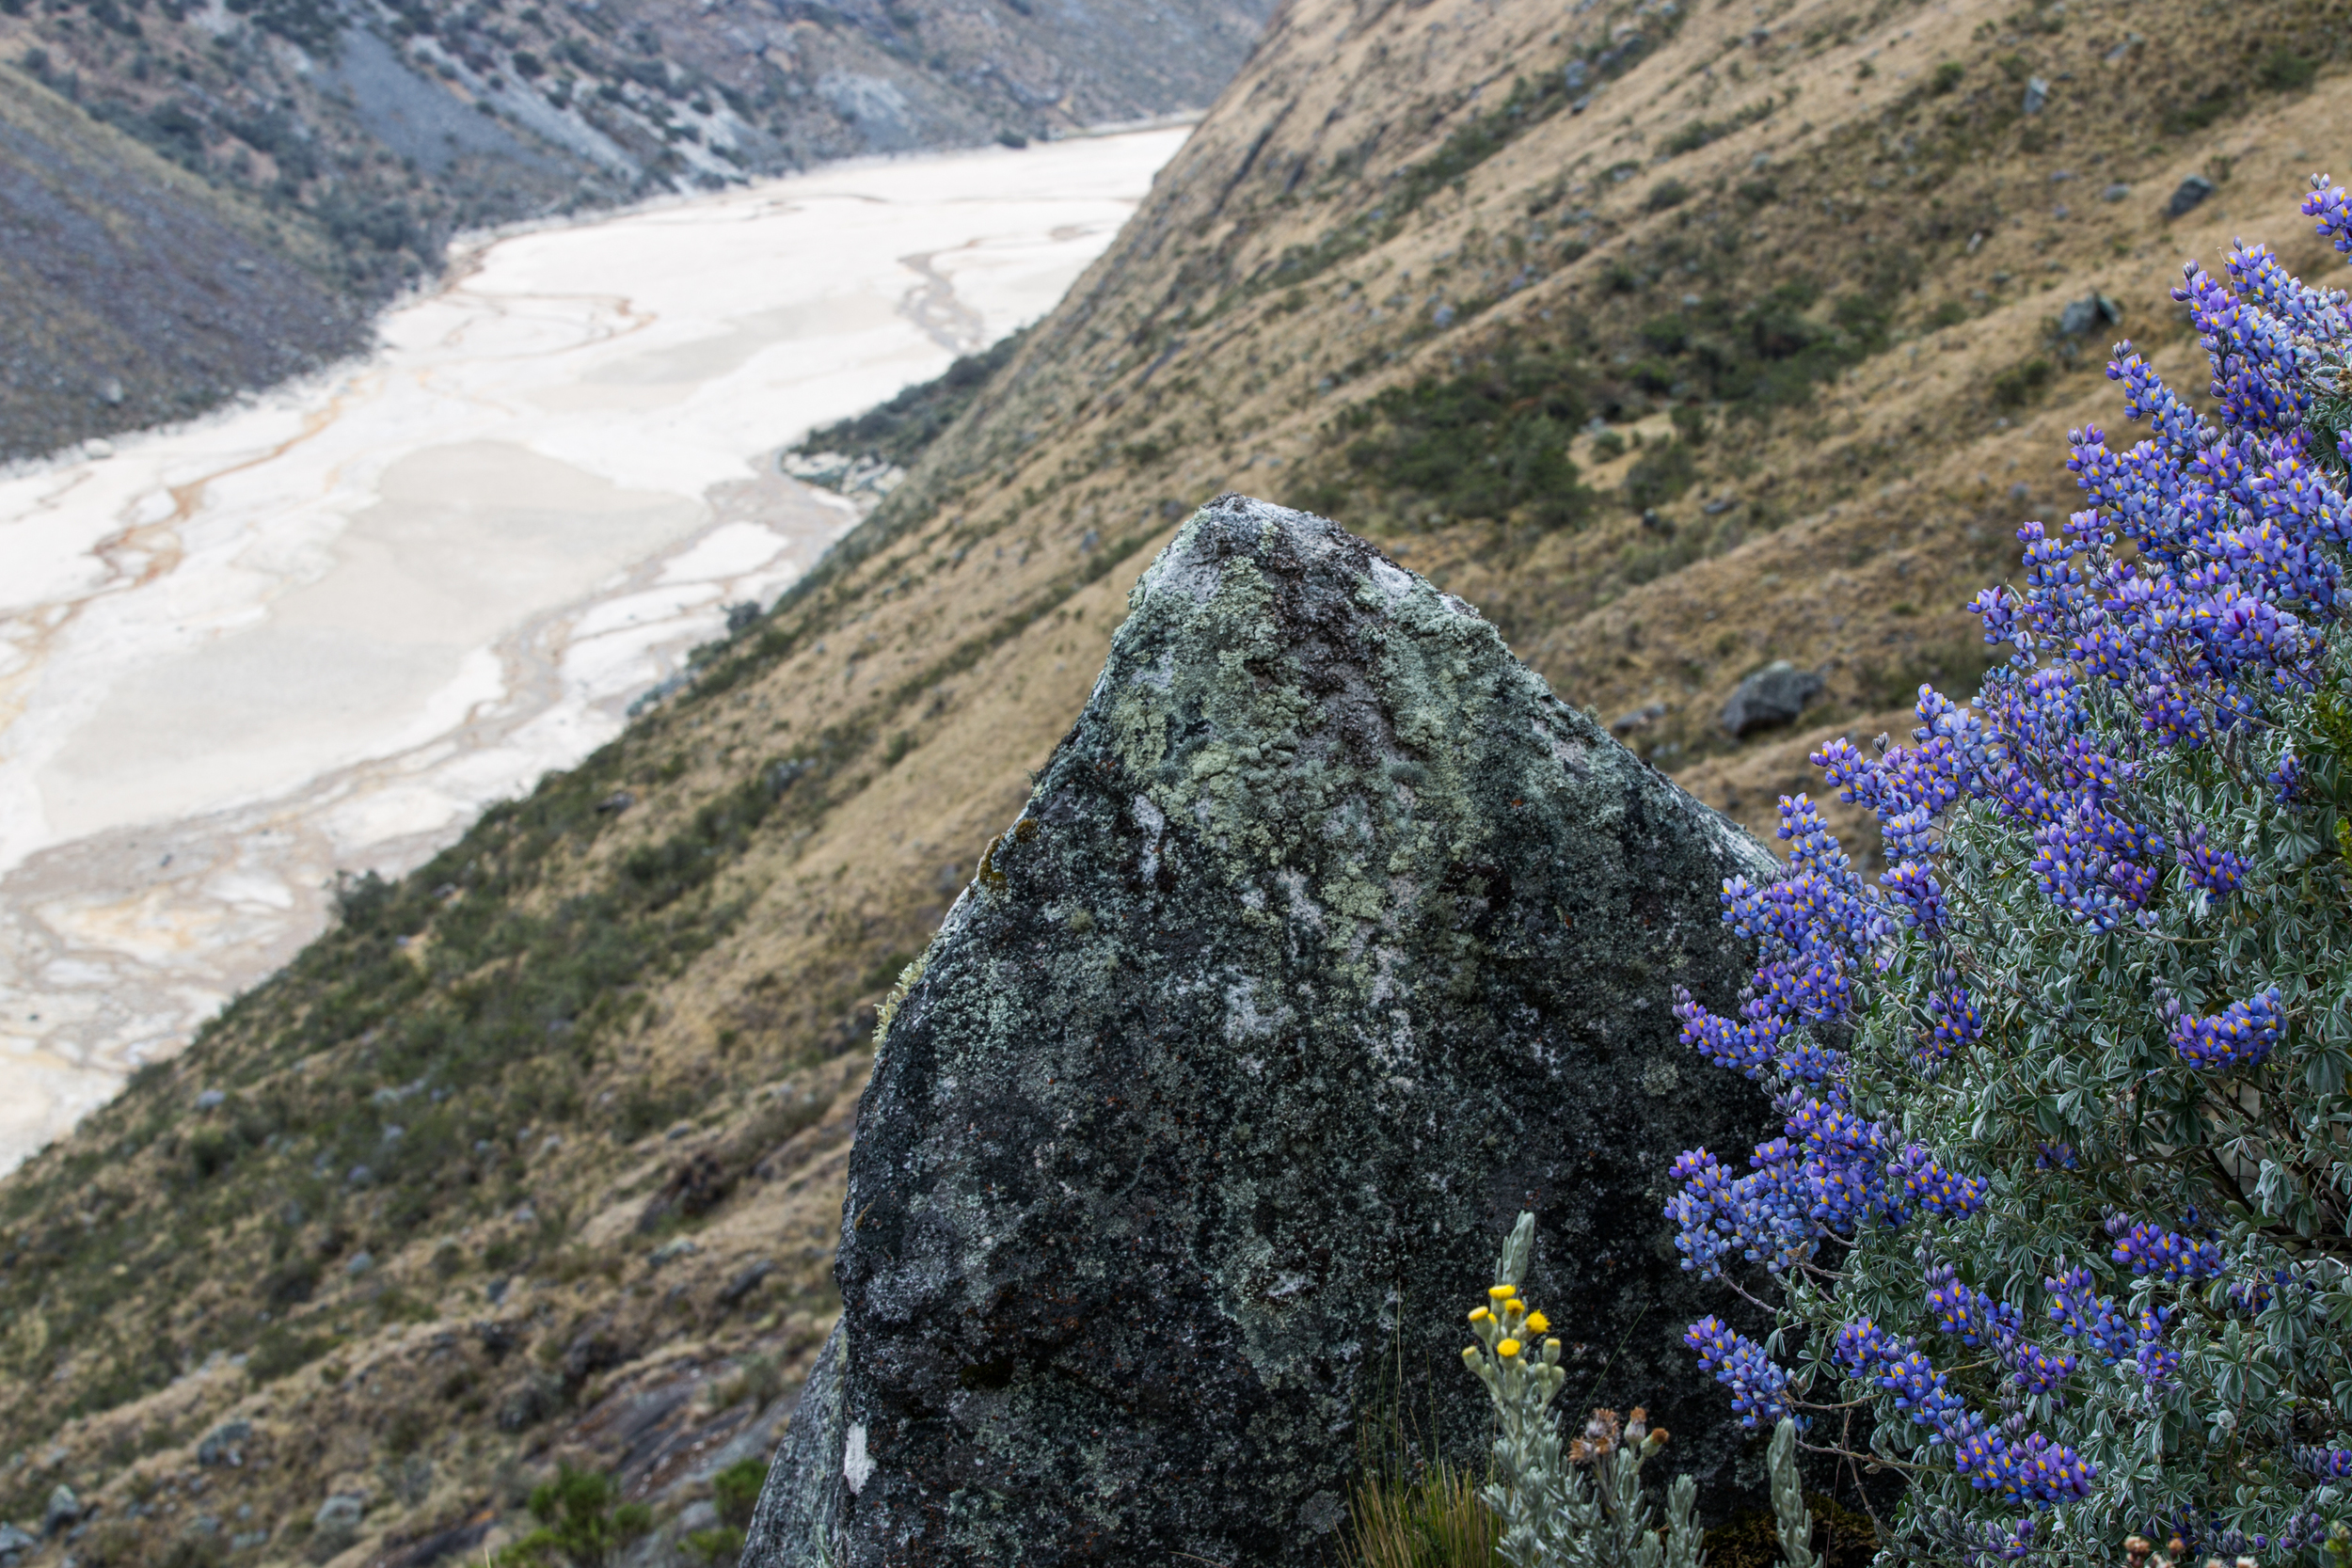 Valley with blue flowers